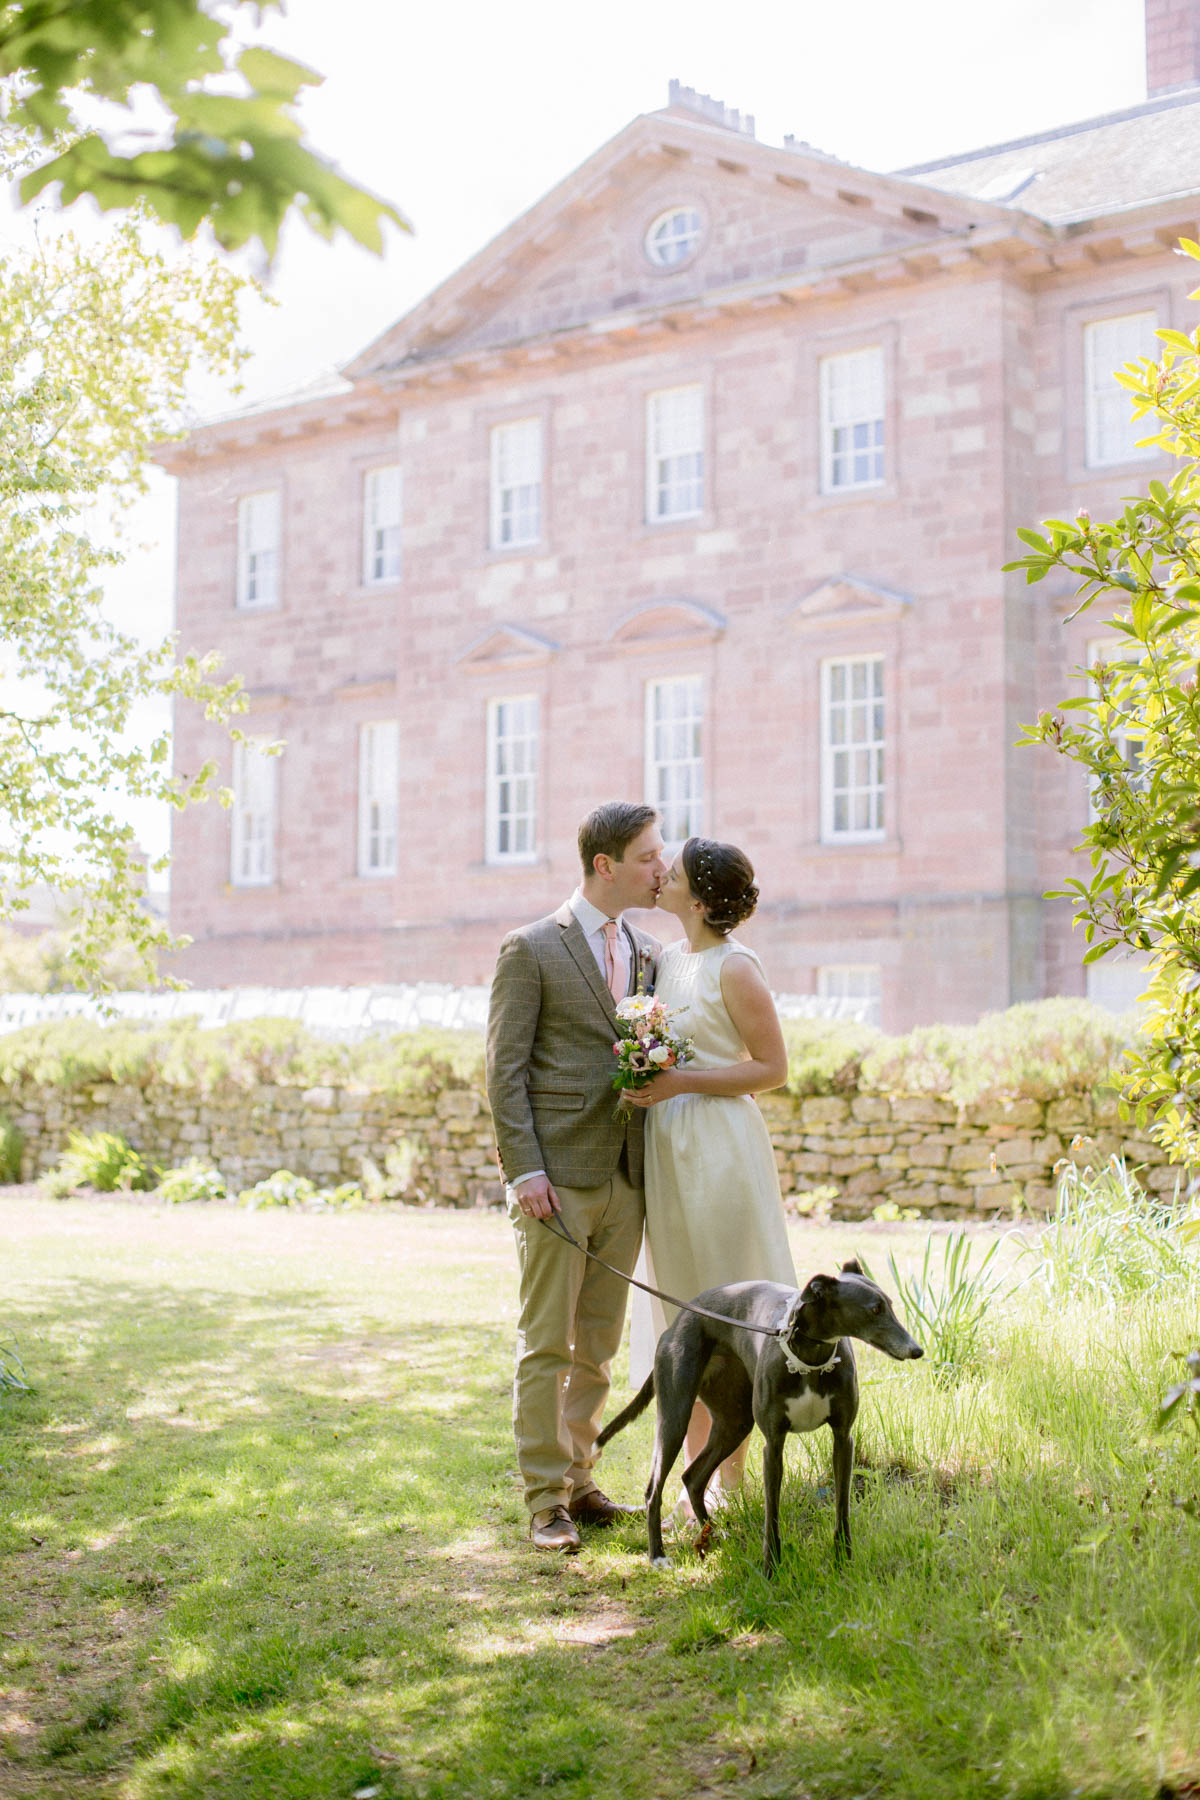 Paxton House Wedding Photography Portraits in the Gardens with greyhound dog by Ceranna Photography | Scottish Borders Wedding